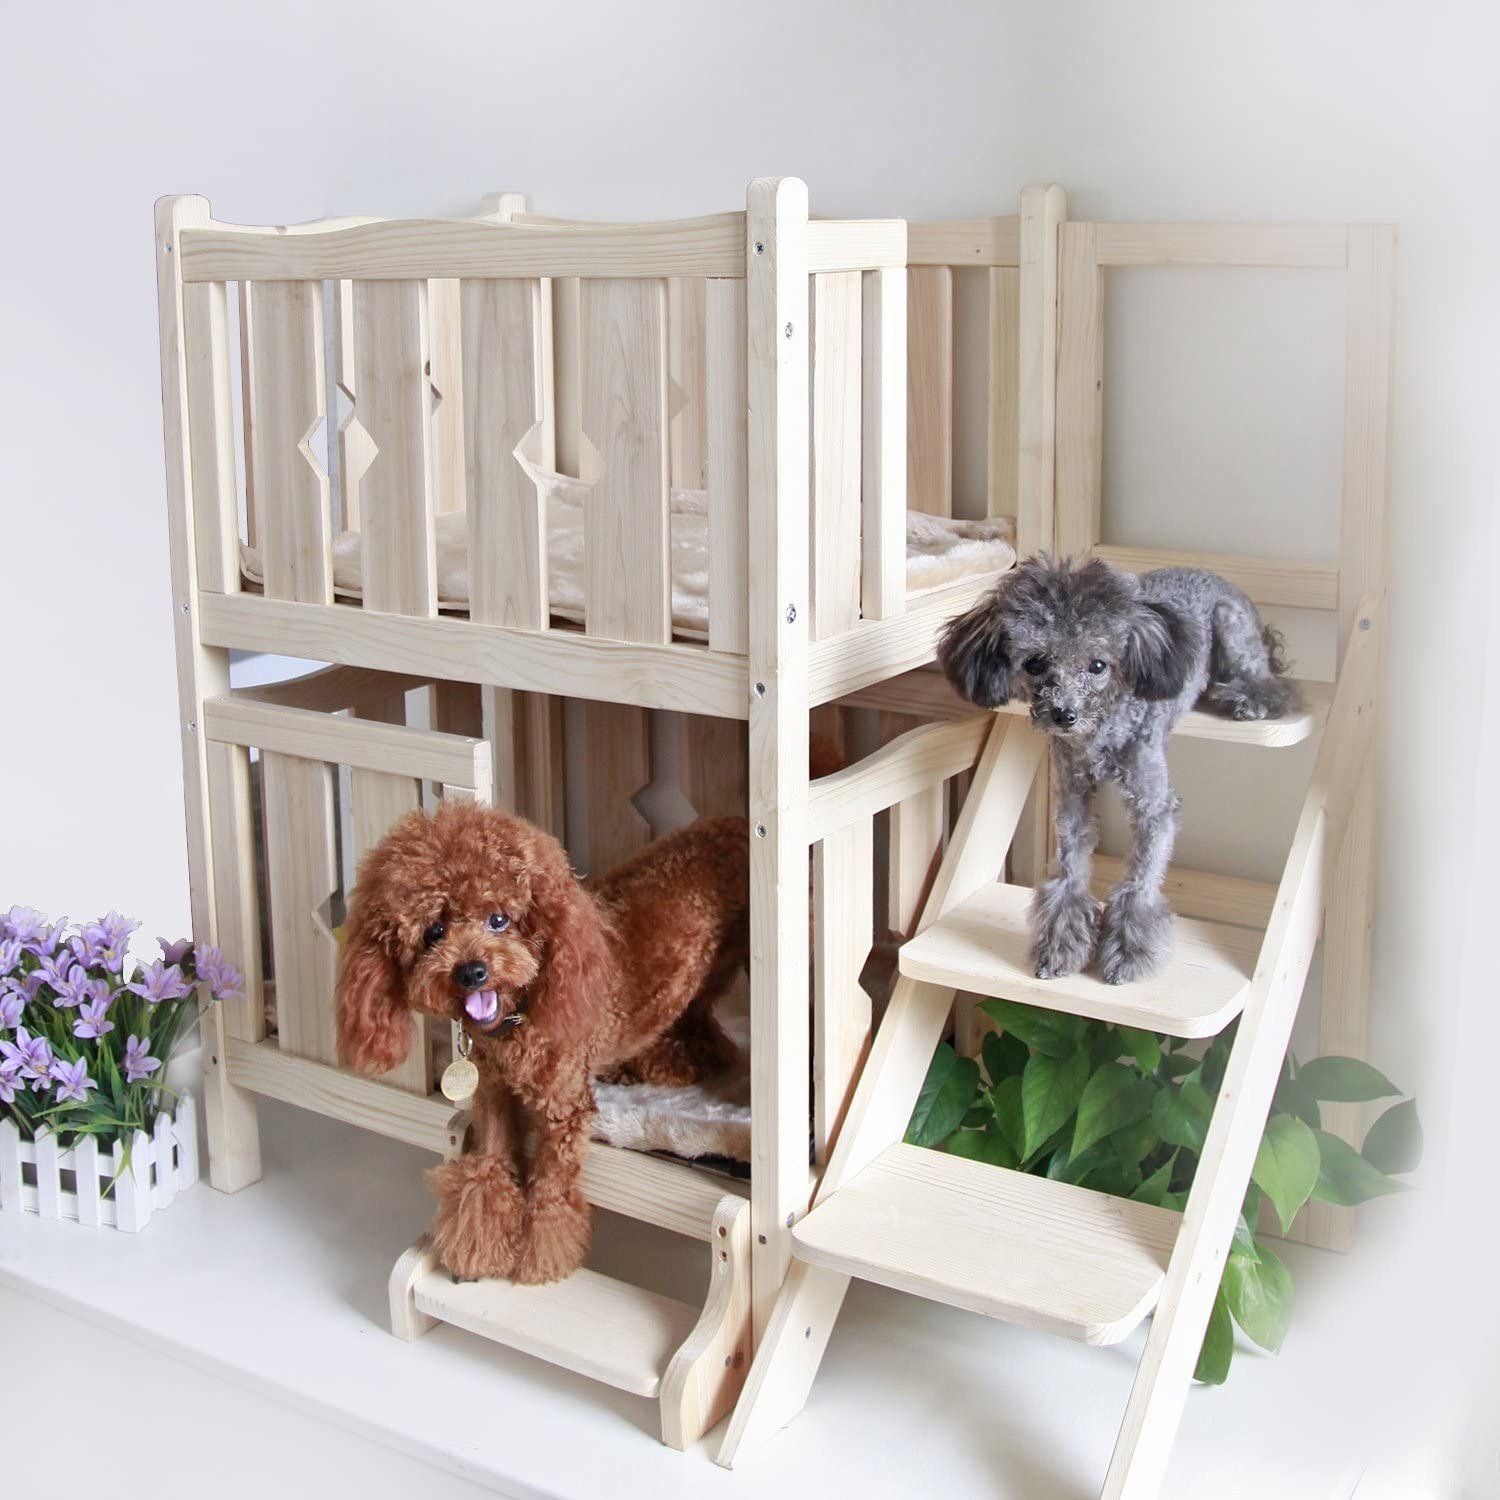 The two-level dog house